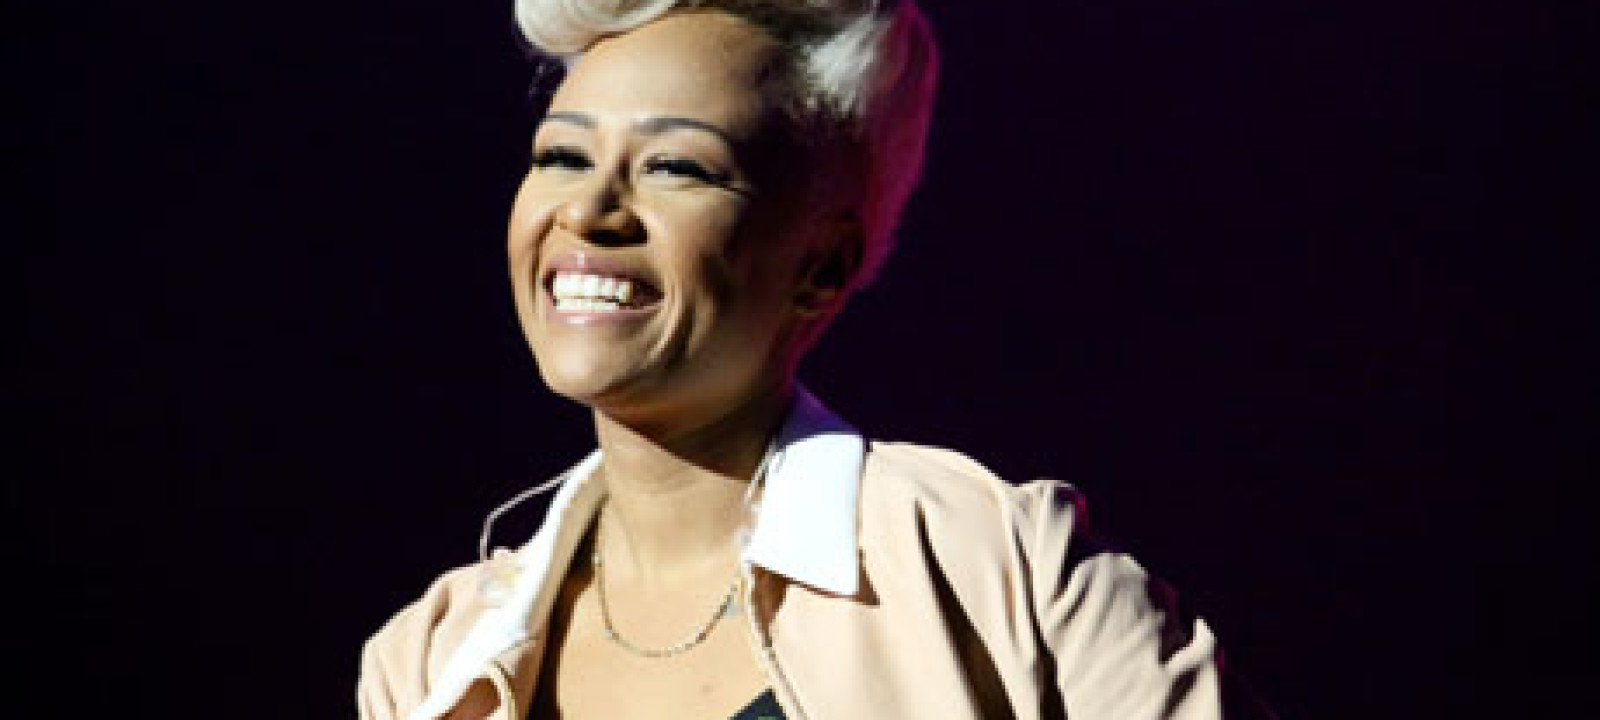 Top 10 Songs Of - EMELIE SANDE - YouTube